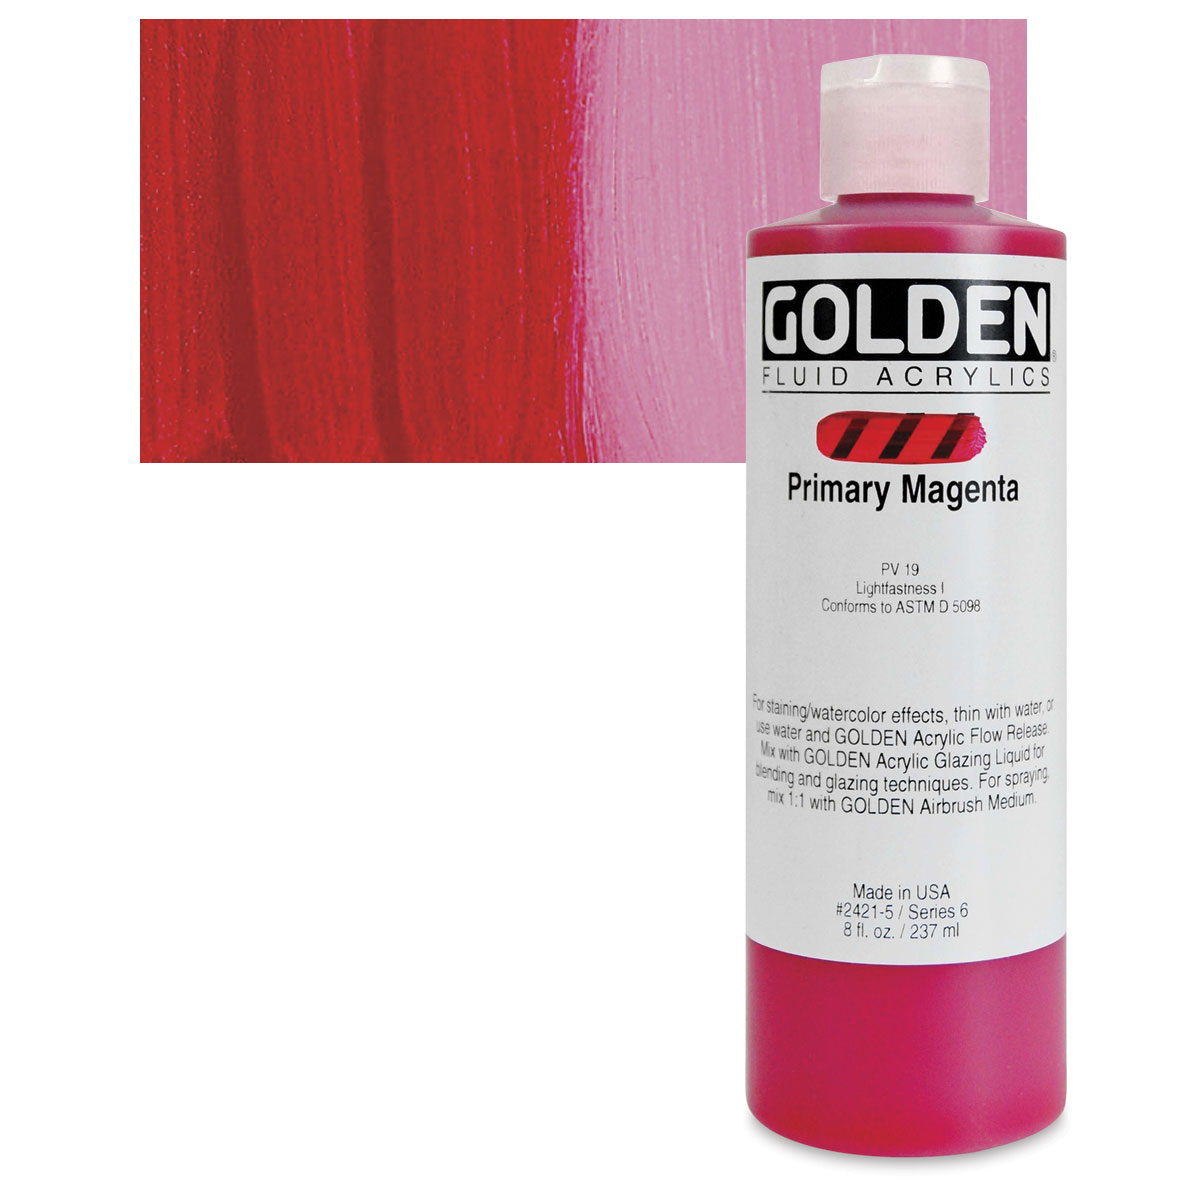 006383045 golden fluid acrylics blick art materials